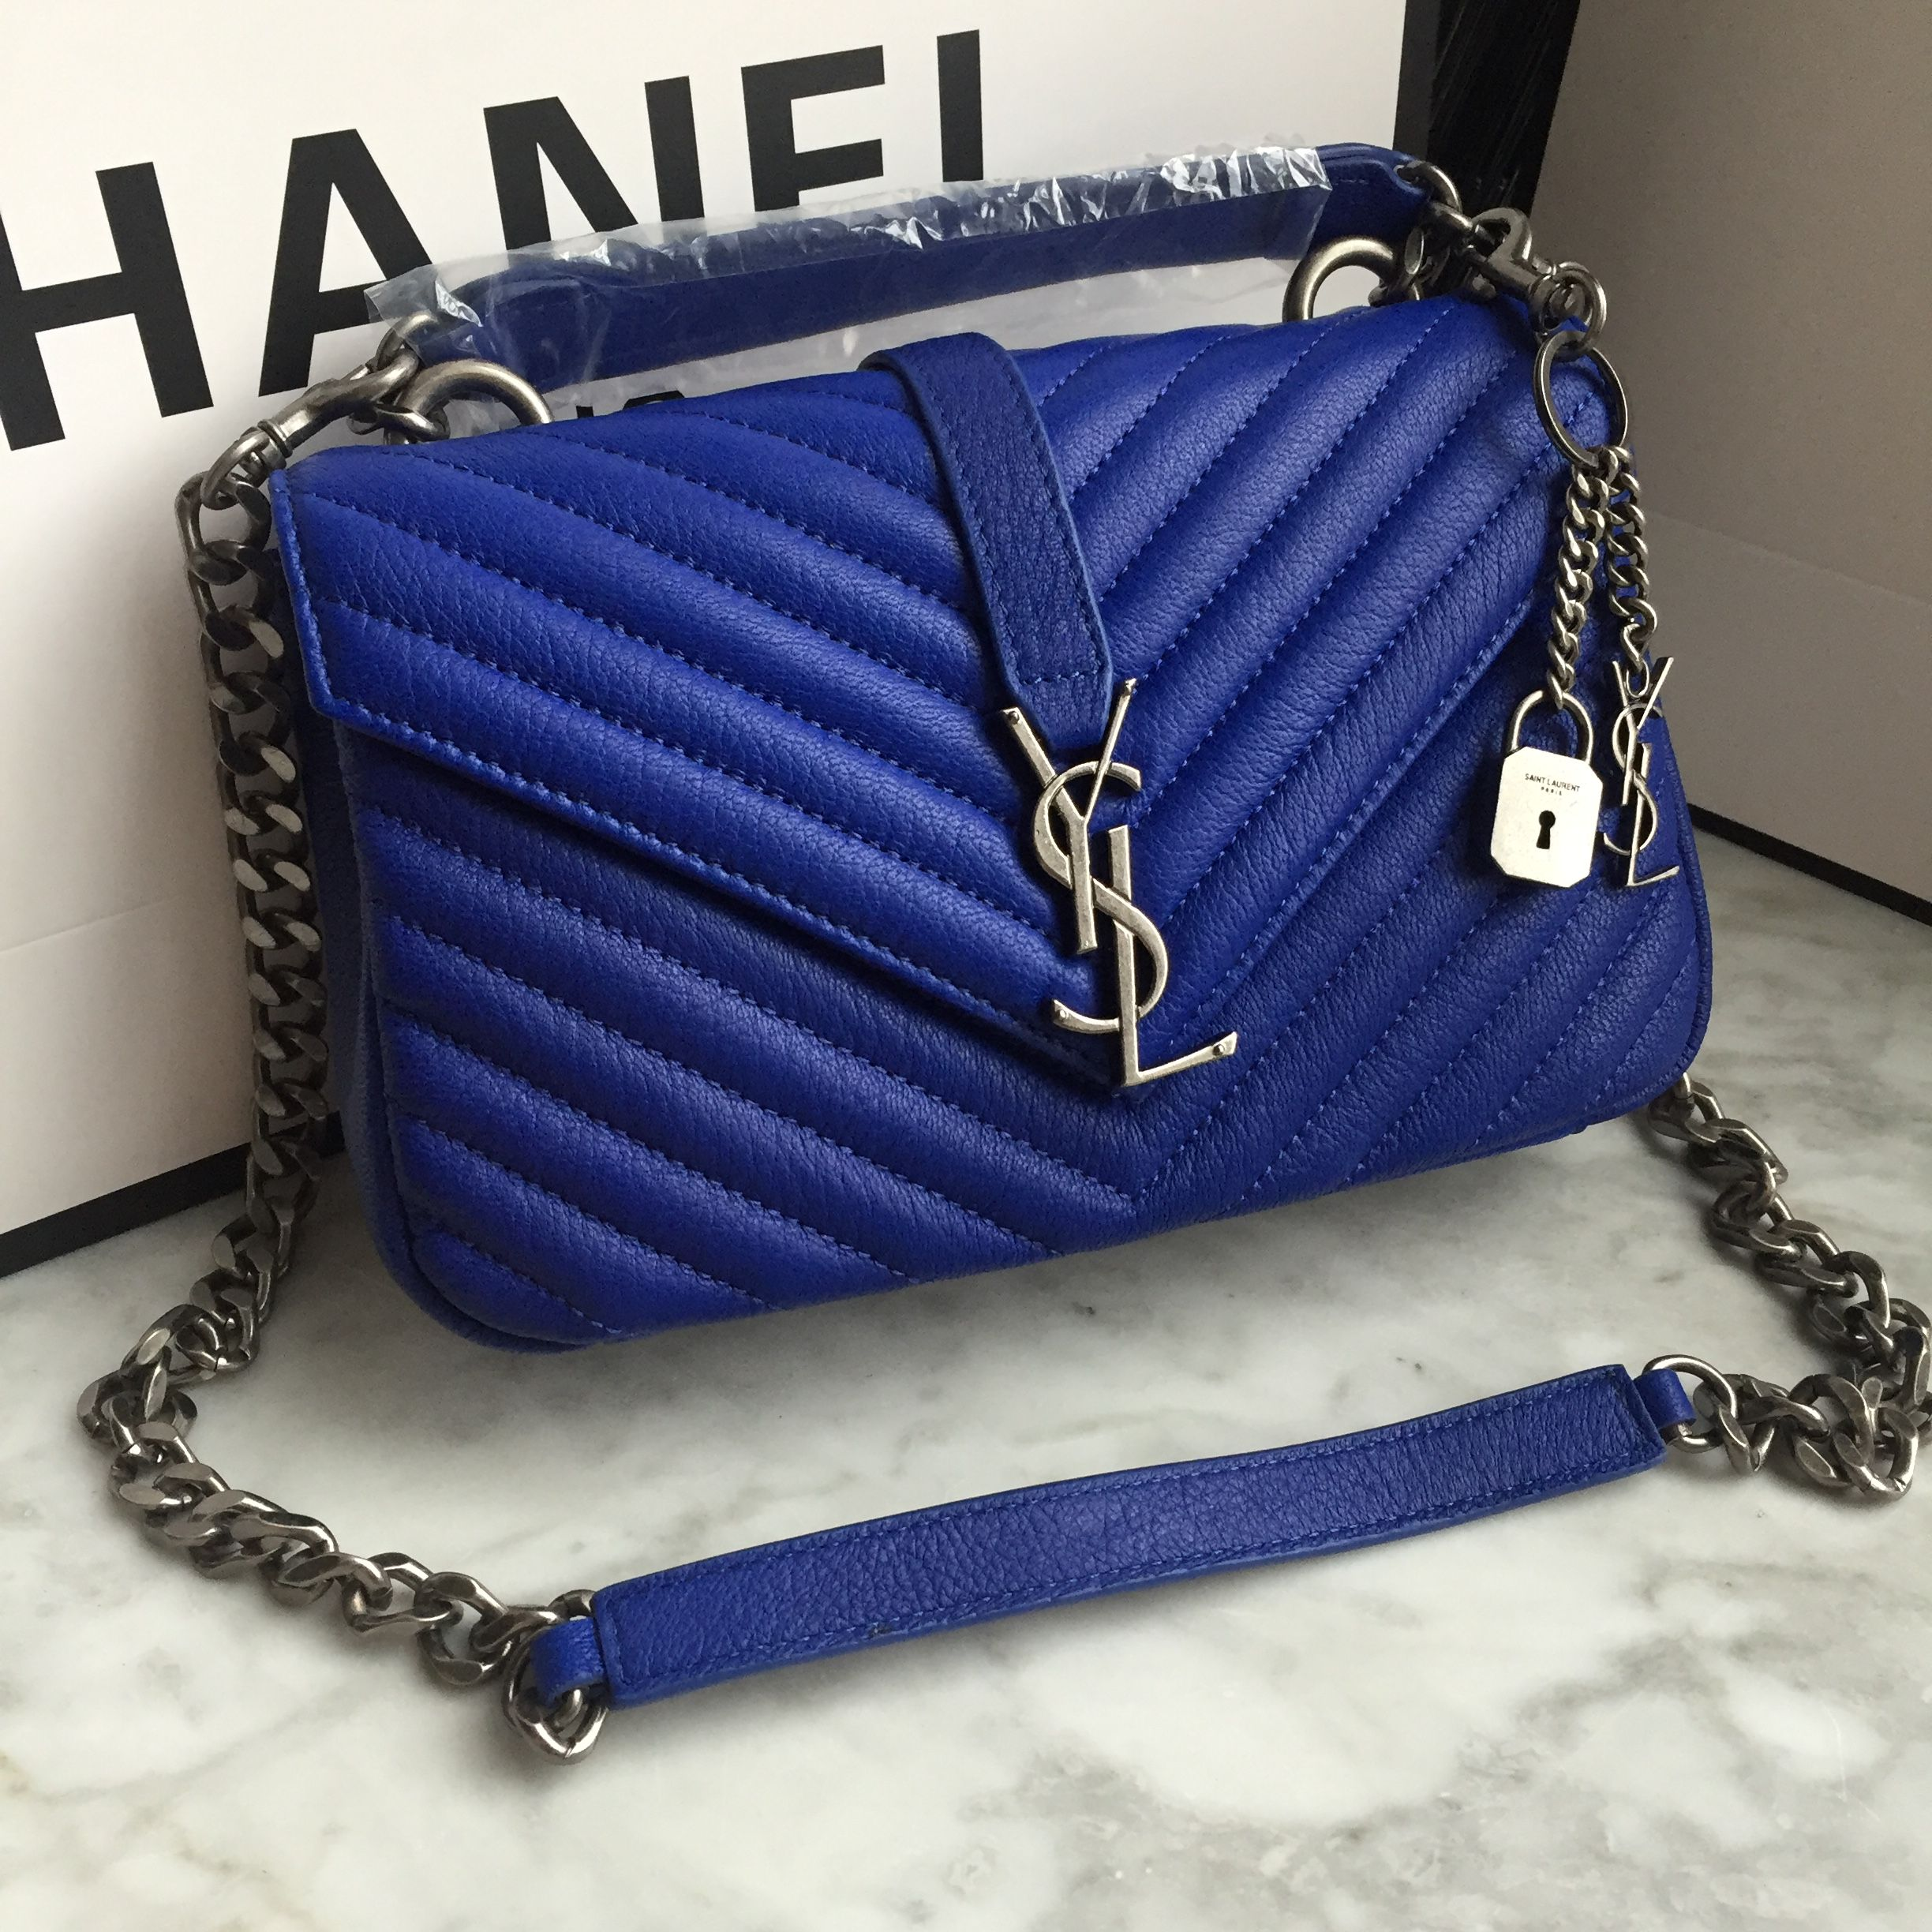 4b0ecd6bb747 YSL Saint Laurent slp college bag deerskin blue